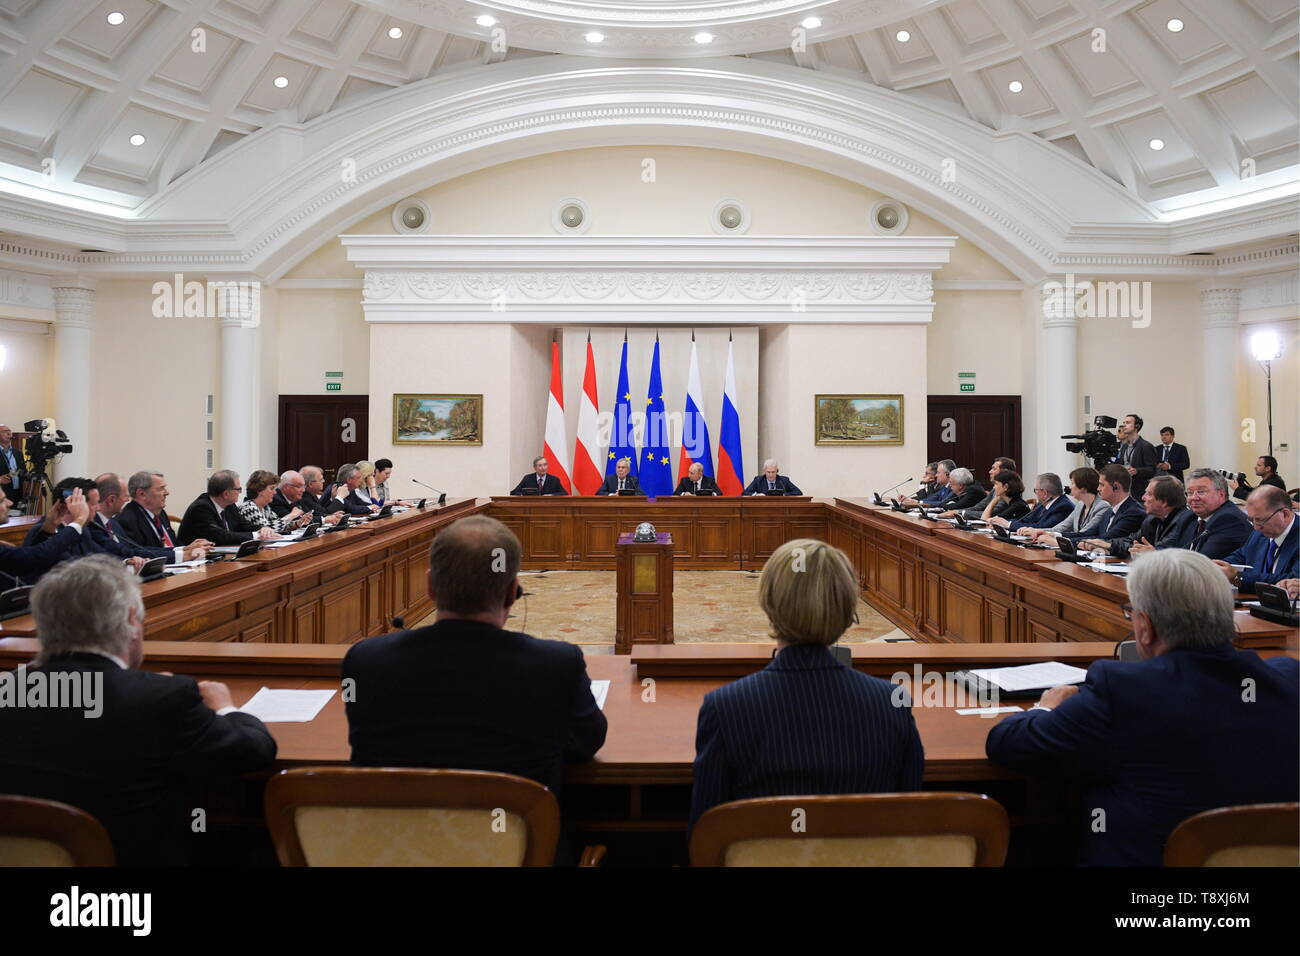 Sochi, Russia. 15th May, 2019. SOCHI, RUSSIA - MAY 15, 2019: Christoph Leitl, President of the Association of European Chambers of Commerce and Industry (Eurochambres), Austria's President Alexander Van der Bellen, Russia's President Vladimir Putin and his aide Andrei Fursenko (L-R back centre) attend the inaugural meeting of the Sochi Dialogue Forum. Alexei Druzhinin/Russian Presidential Press and Information Office/TASS Credit: ITAR-TASS News Agency/Alamy Live News Stock Photo